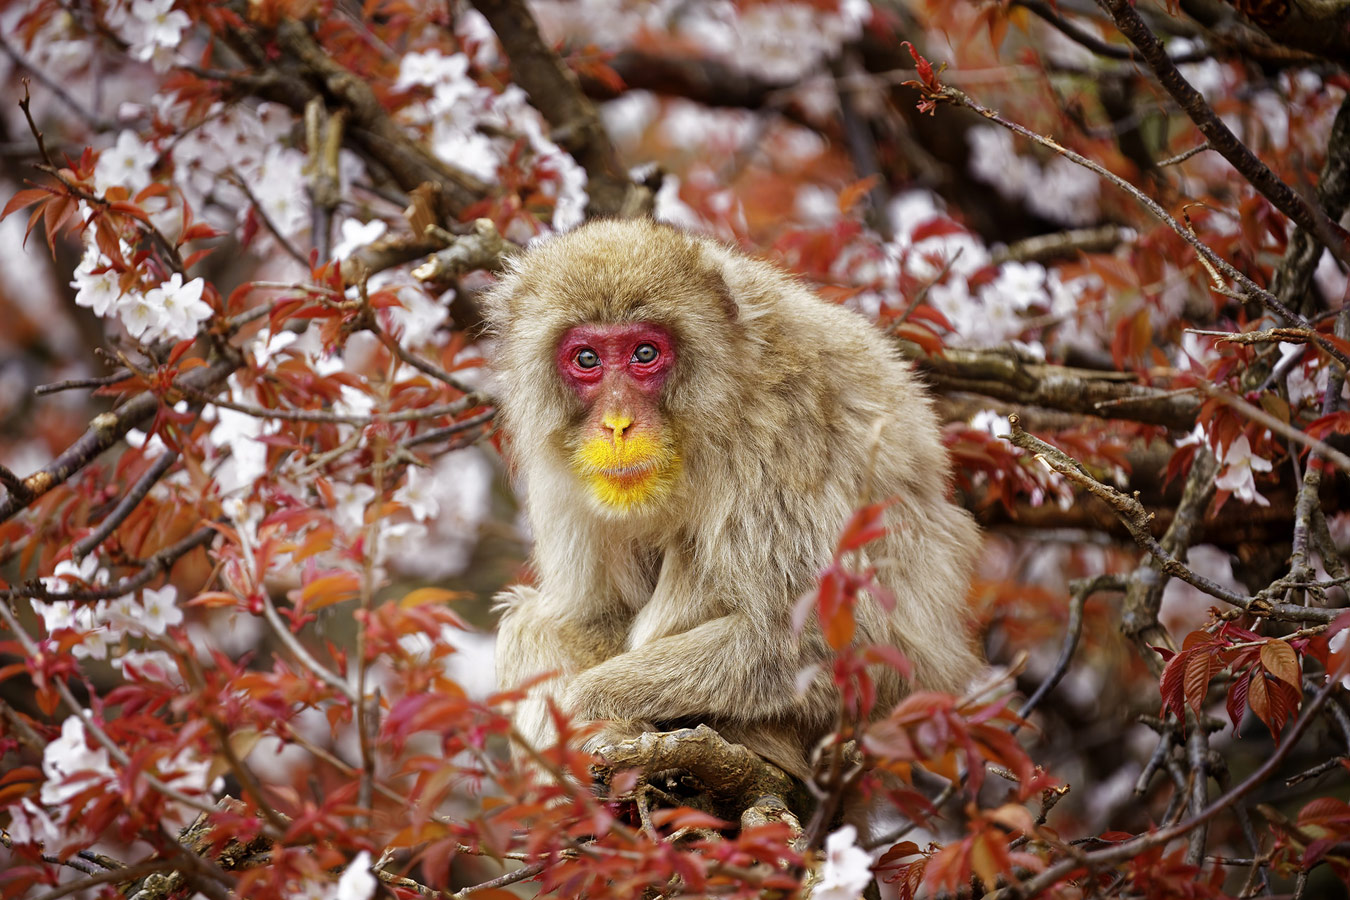 On the cherry tree, © Shinichi Masuda, Tokyo, Japan, Winner Wildlife, Nature's Best Photography Asia